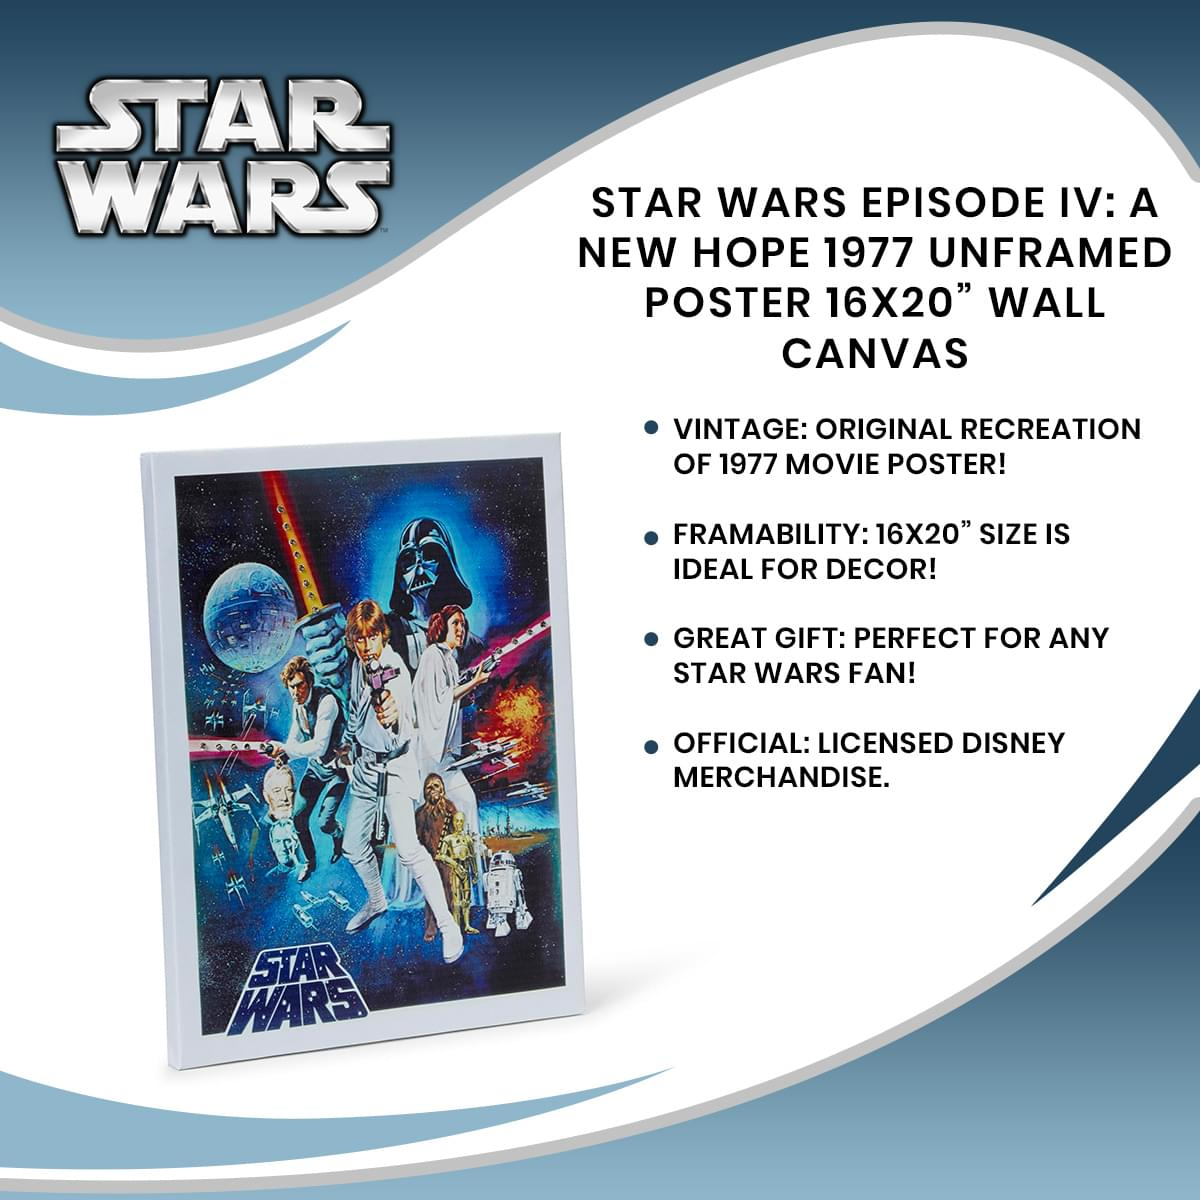 Star Wars Episode Iv A New Hope 1977 Unframed Poster 16x20 Wall Canv Toynk Toys